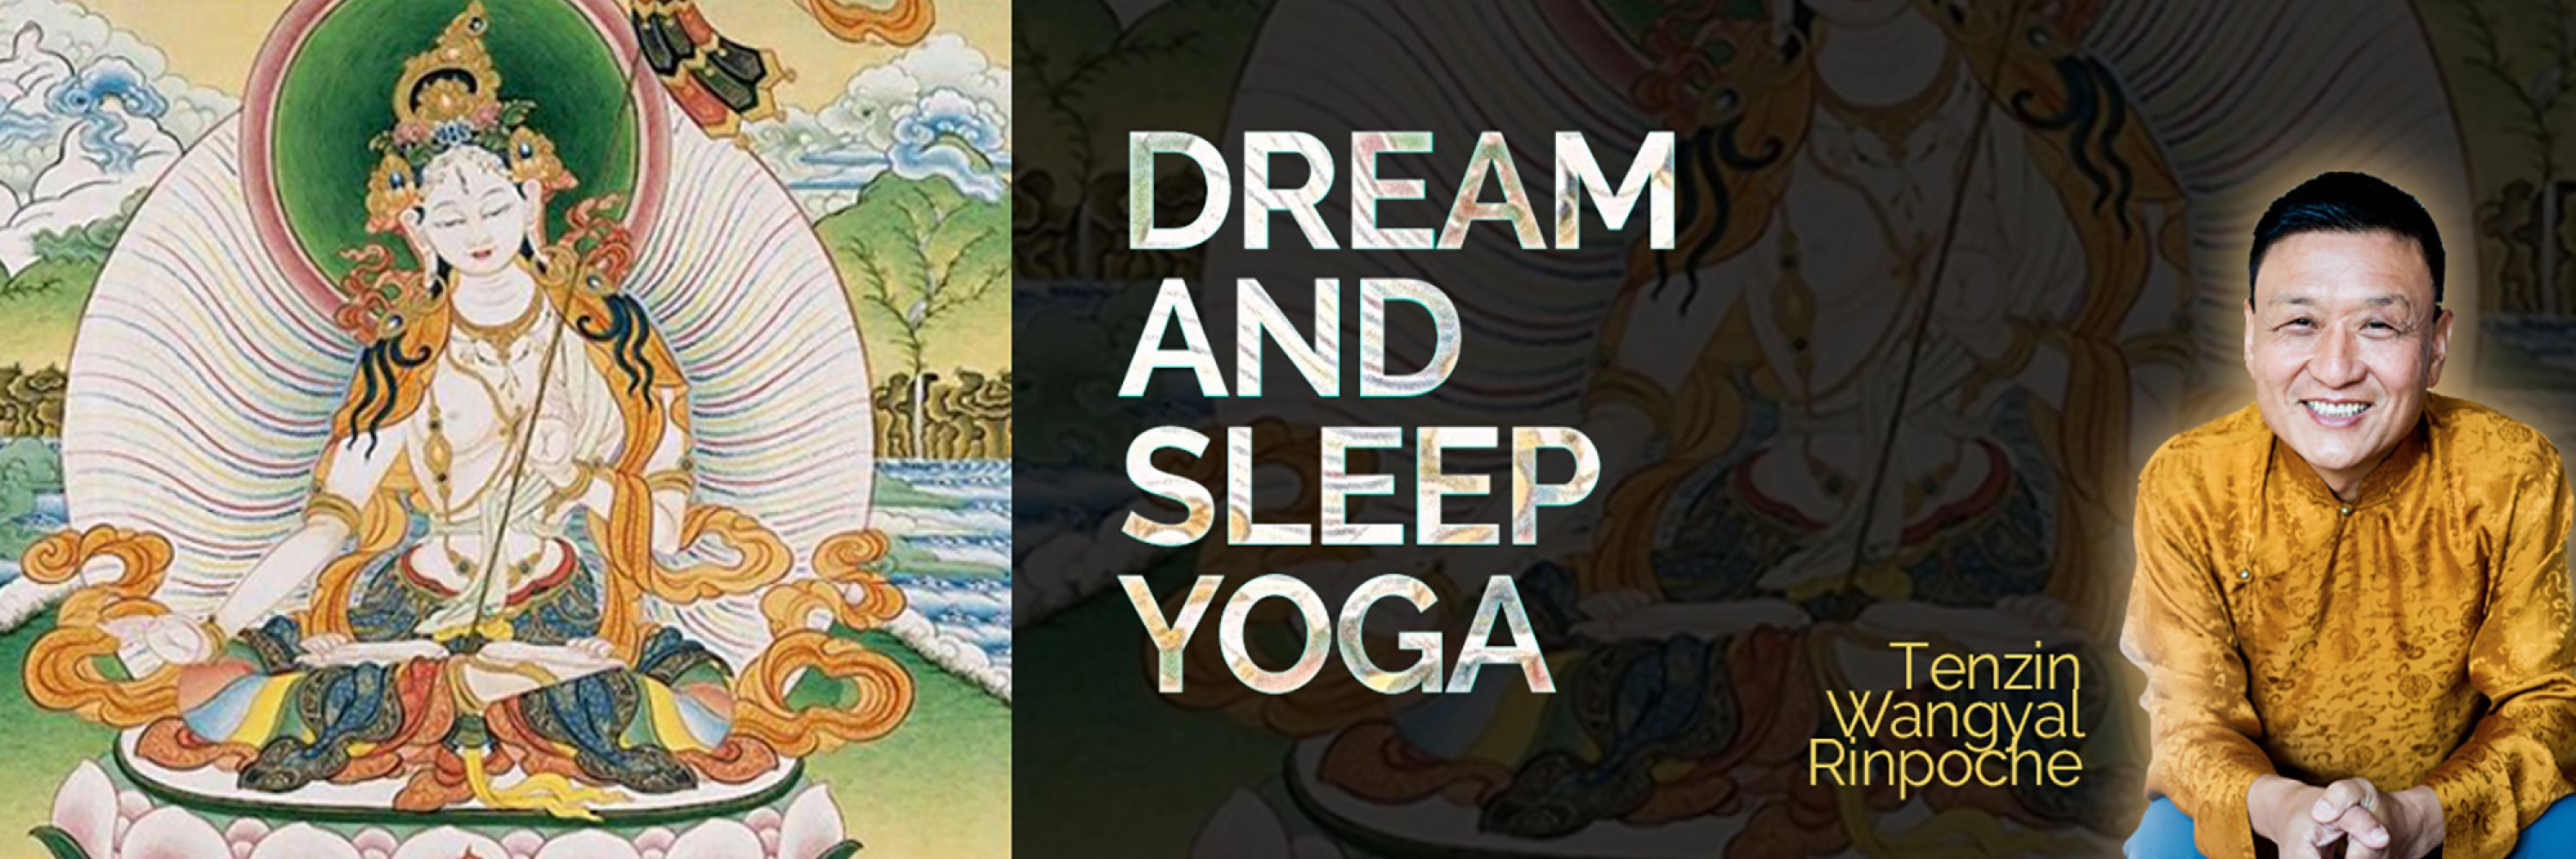 Dream and Sleep Yoga